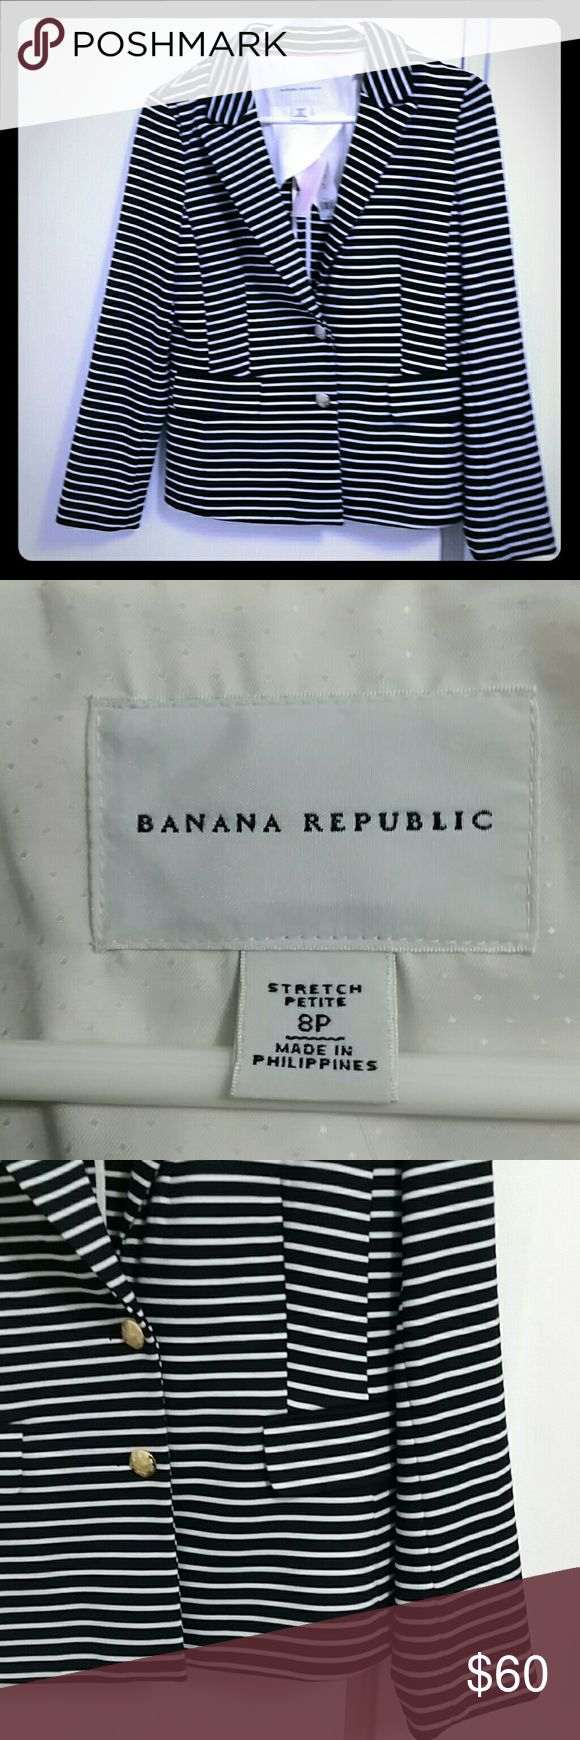 NWT Banana Republic black and white blazer size 8P Brand new with tags! Gorgeous heavy knit.with slight stretch. Two brass-like buttons. Faux front pockets. Really cute, versatile piece to add to your rotation! Size 8P from Banana Republic. Banana Republic Jackets & Coats Blazers